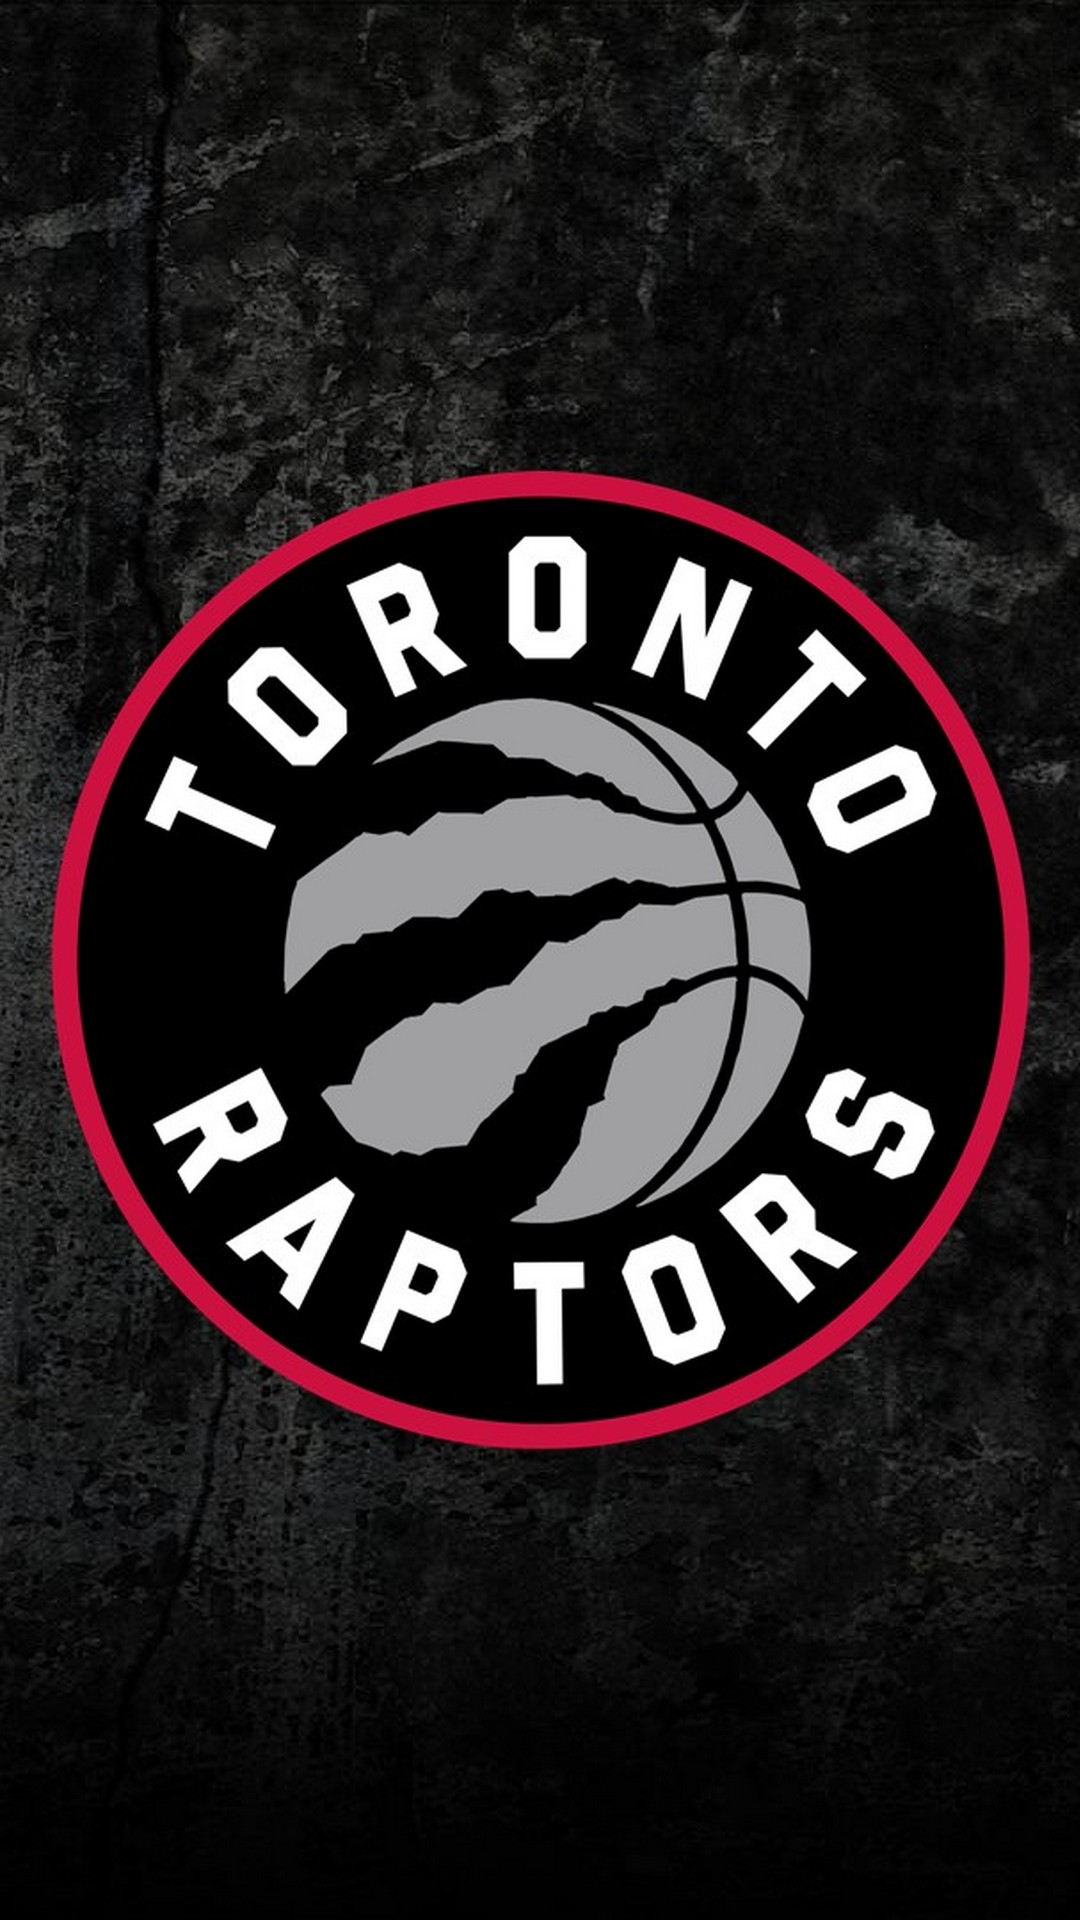 iPhone X Wallpaper Toronto Raptors with image resolution 1080x1920 pixel. You can make this wallpaper for your iPhone 5, 6, 7, 8, X backgrounds, Mobile Screensaver, or iPad Lock Screen